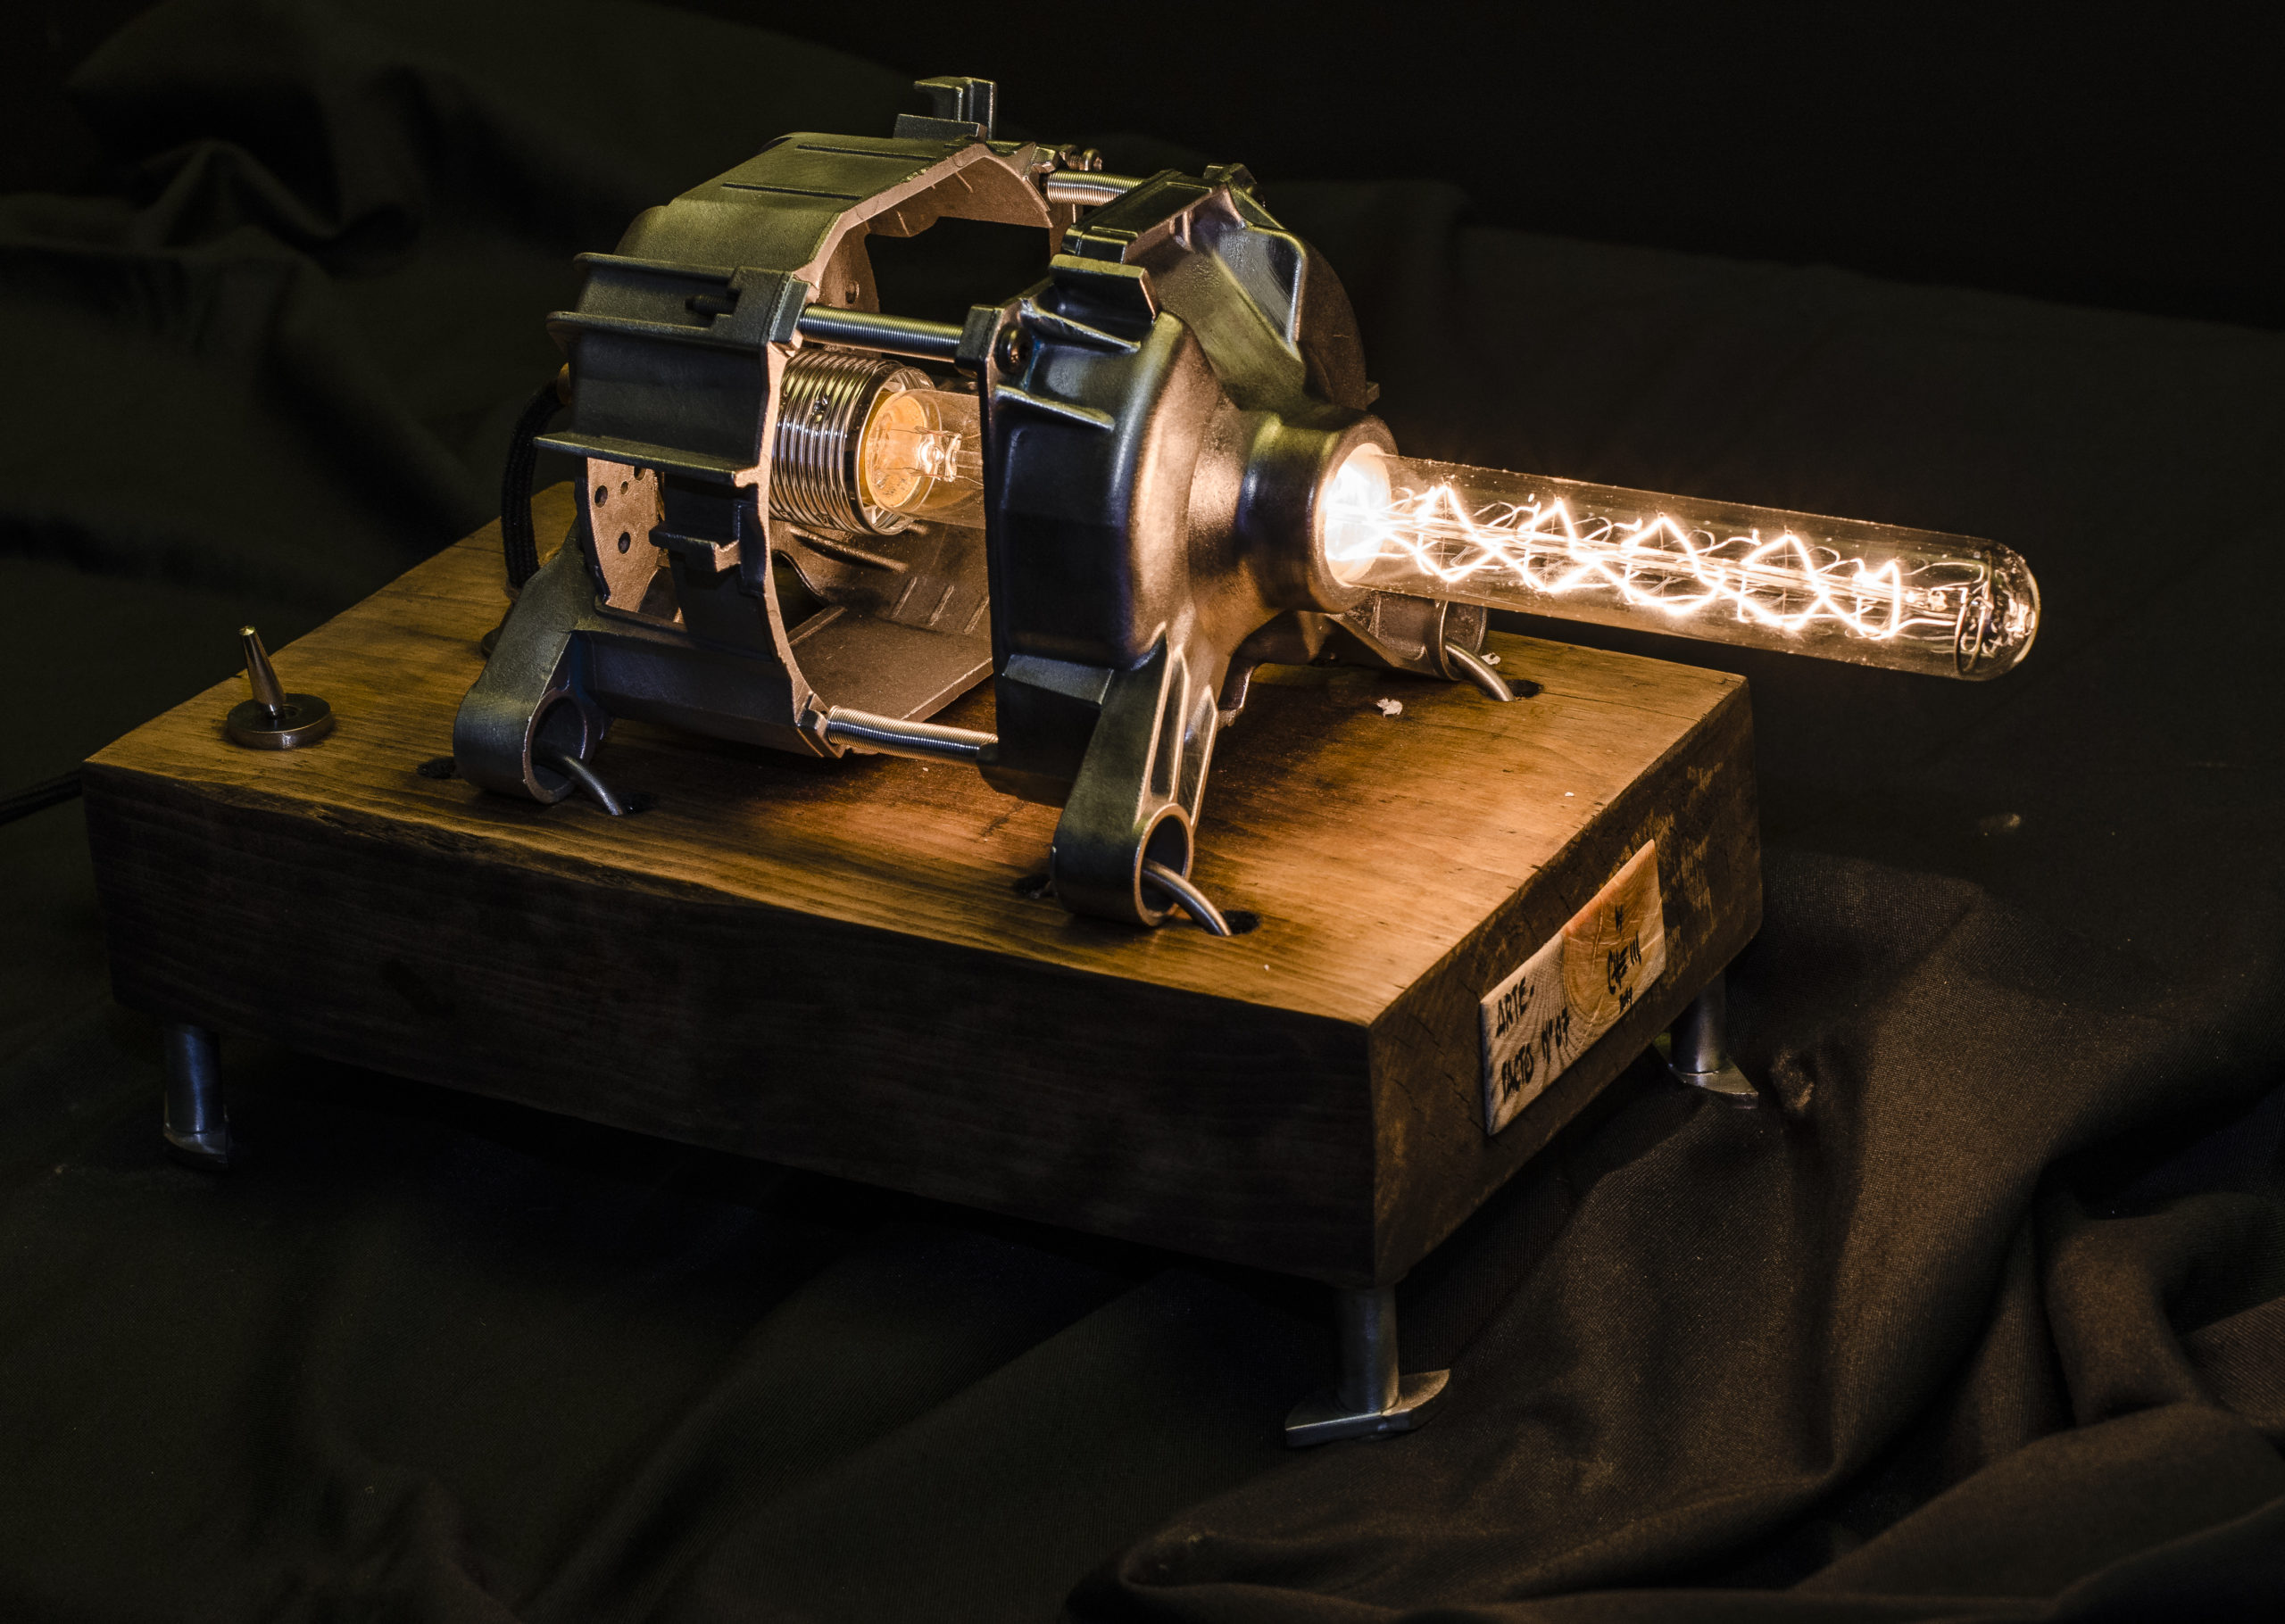 HADRON COLLISION LAMP ART BY CHEM 3